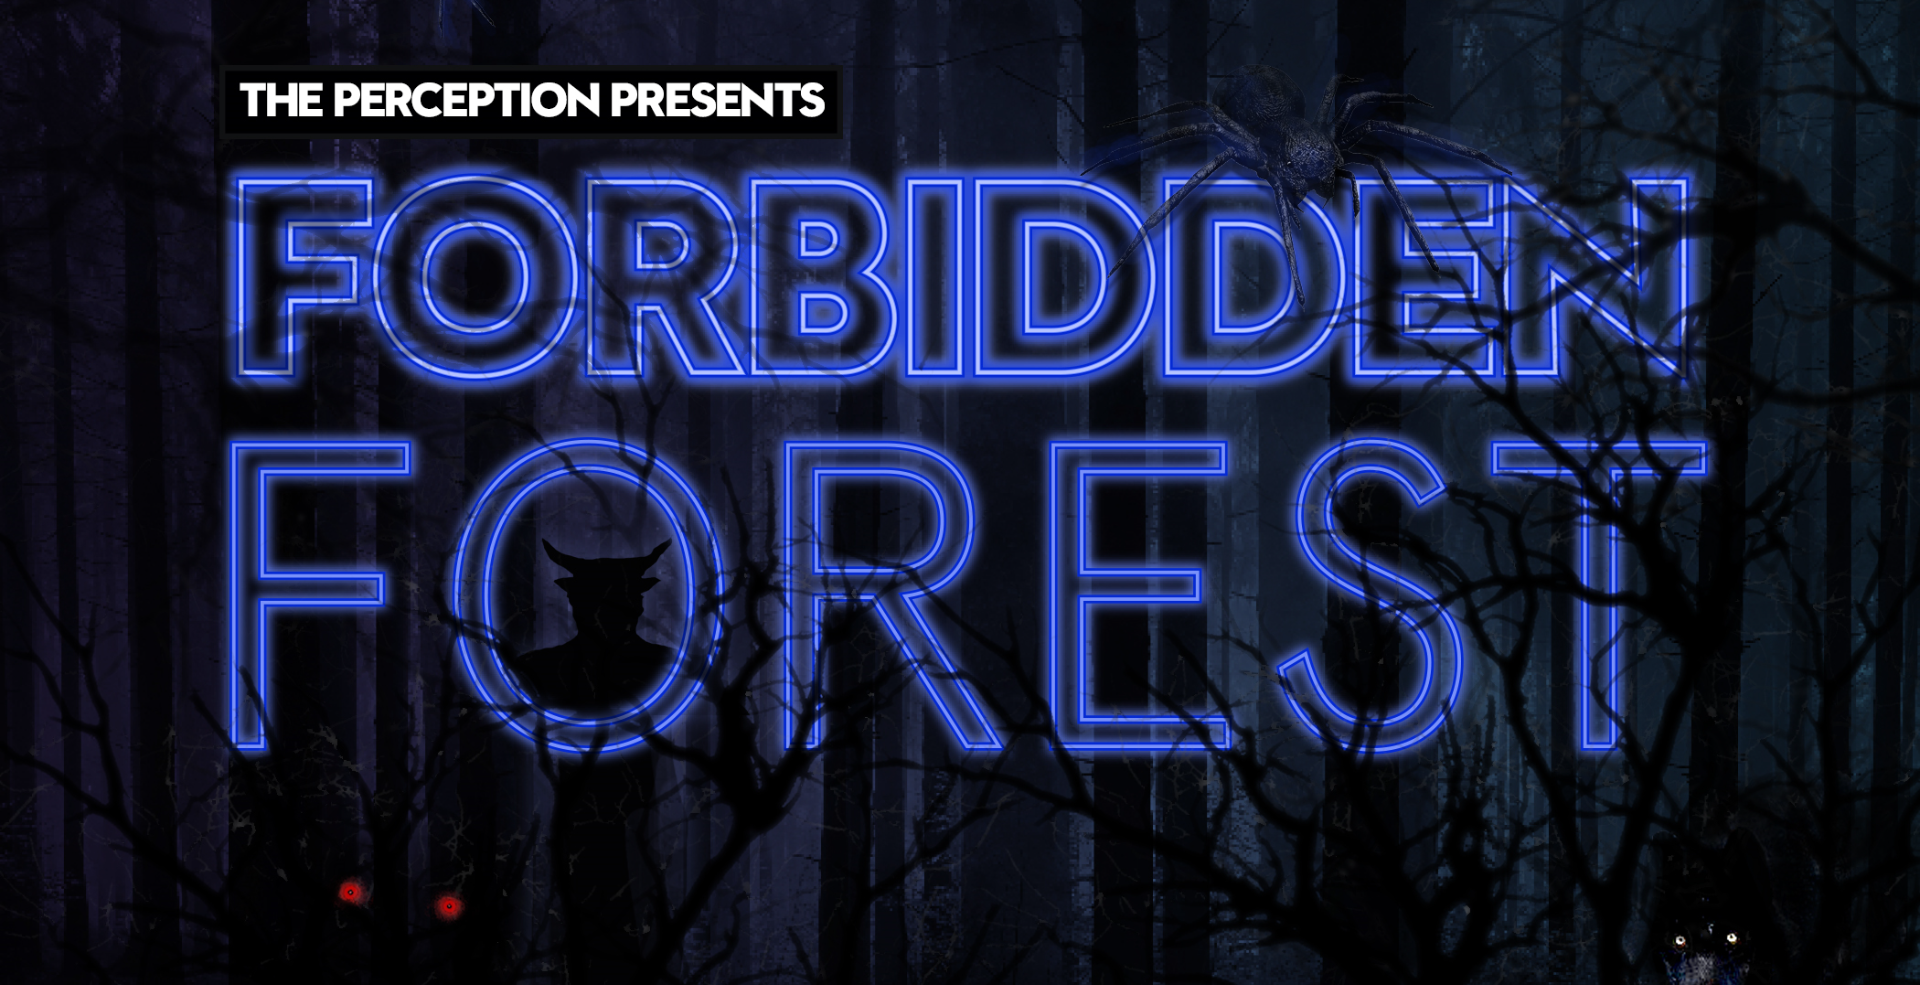 FORBIDDEN FOREST: Halloween at The Perception